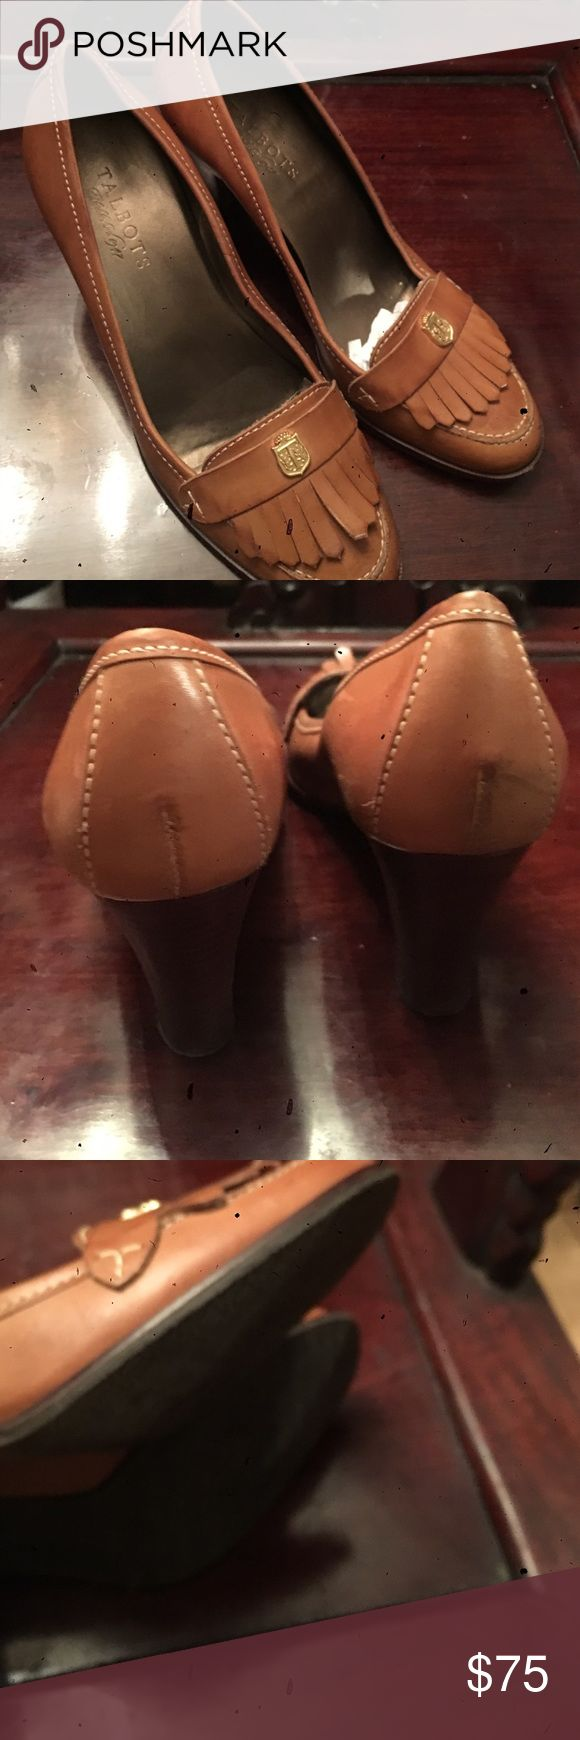 Talbots hign heeled loafer Luggage colored high heeled loafer with kilty. Talbots Shoes Heels